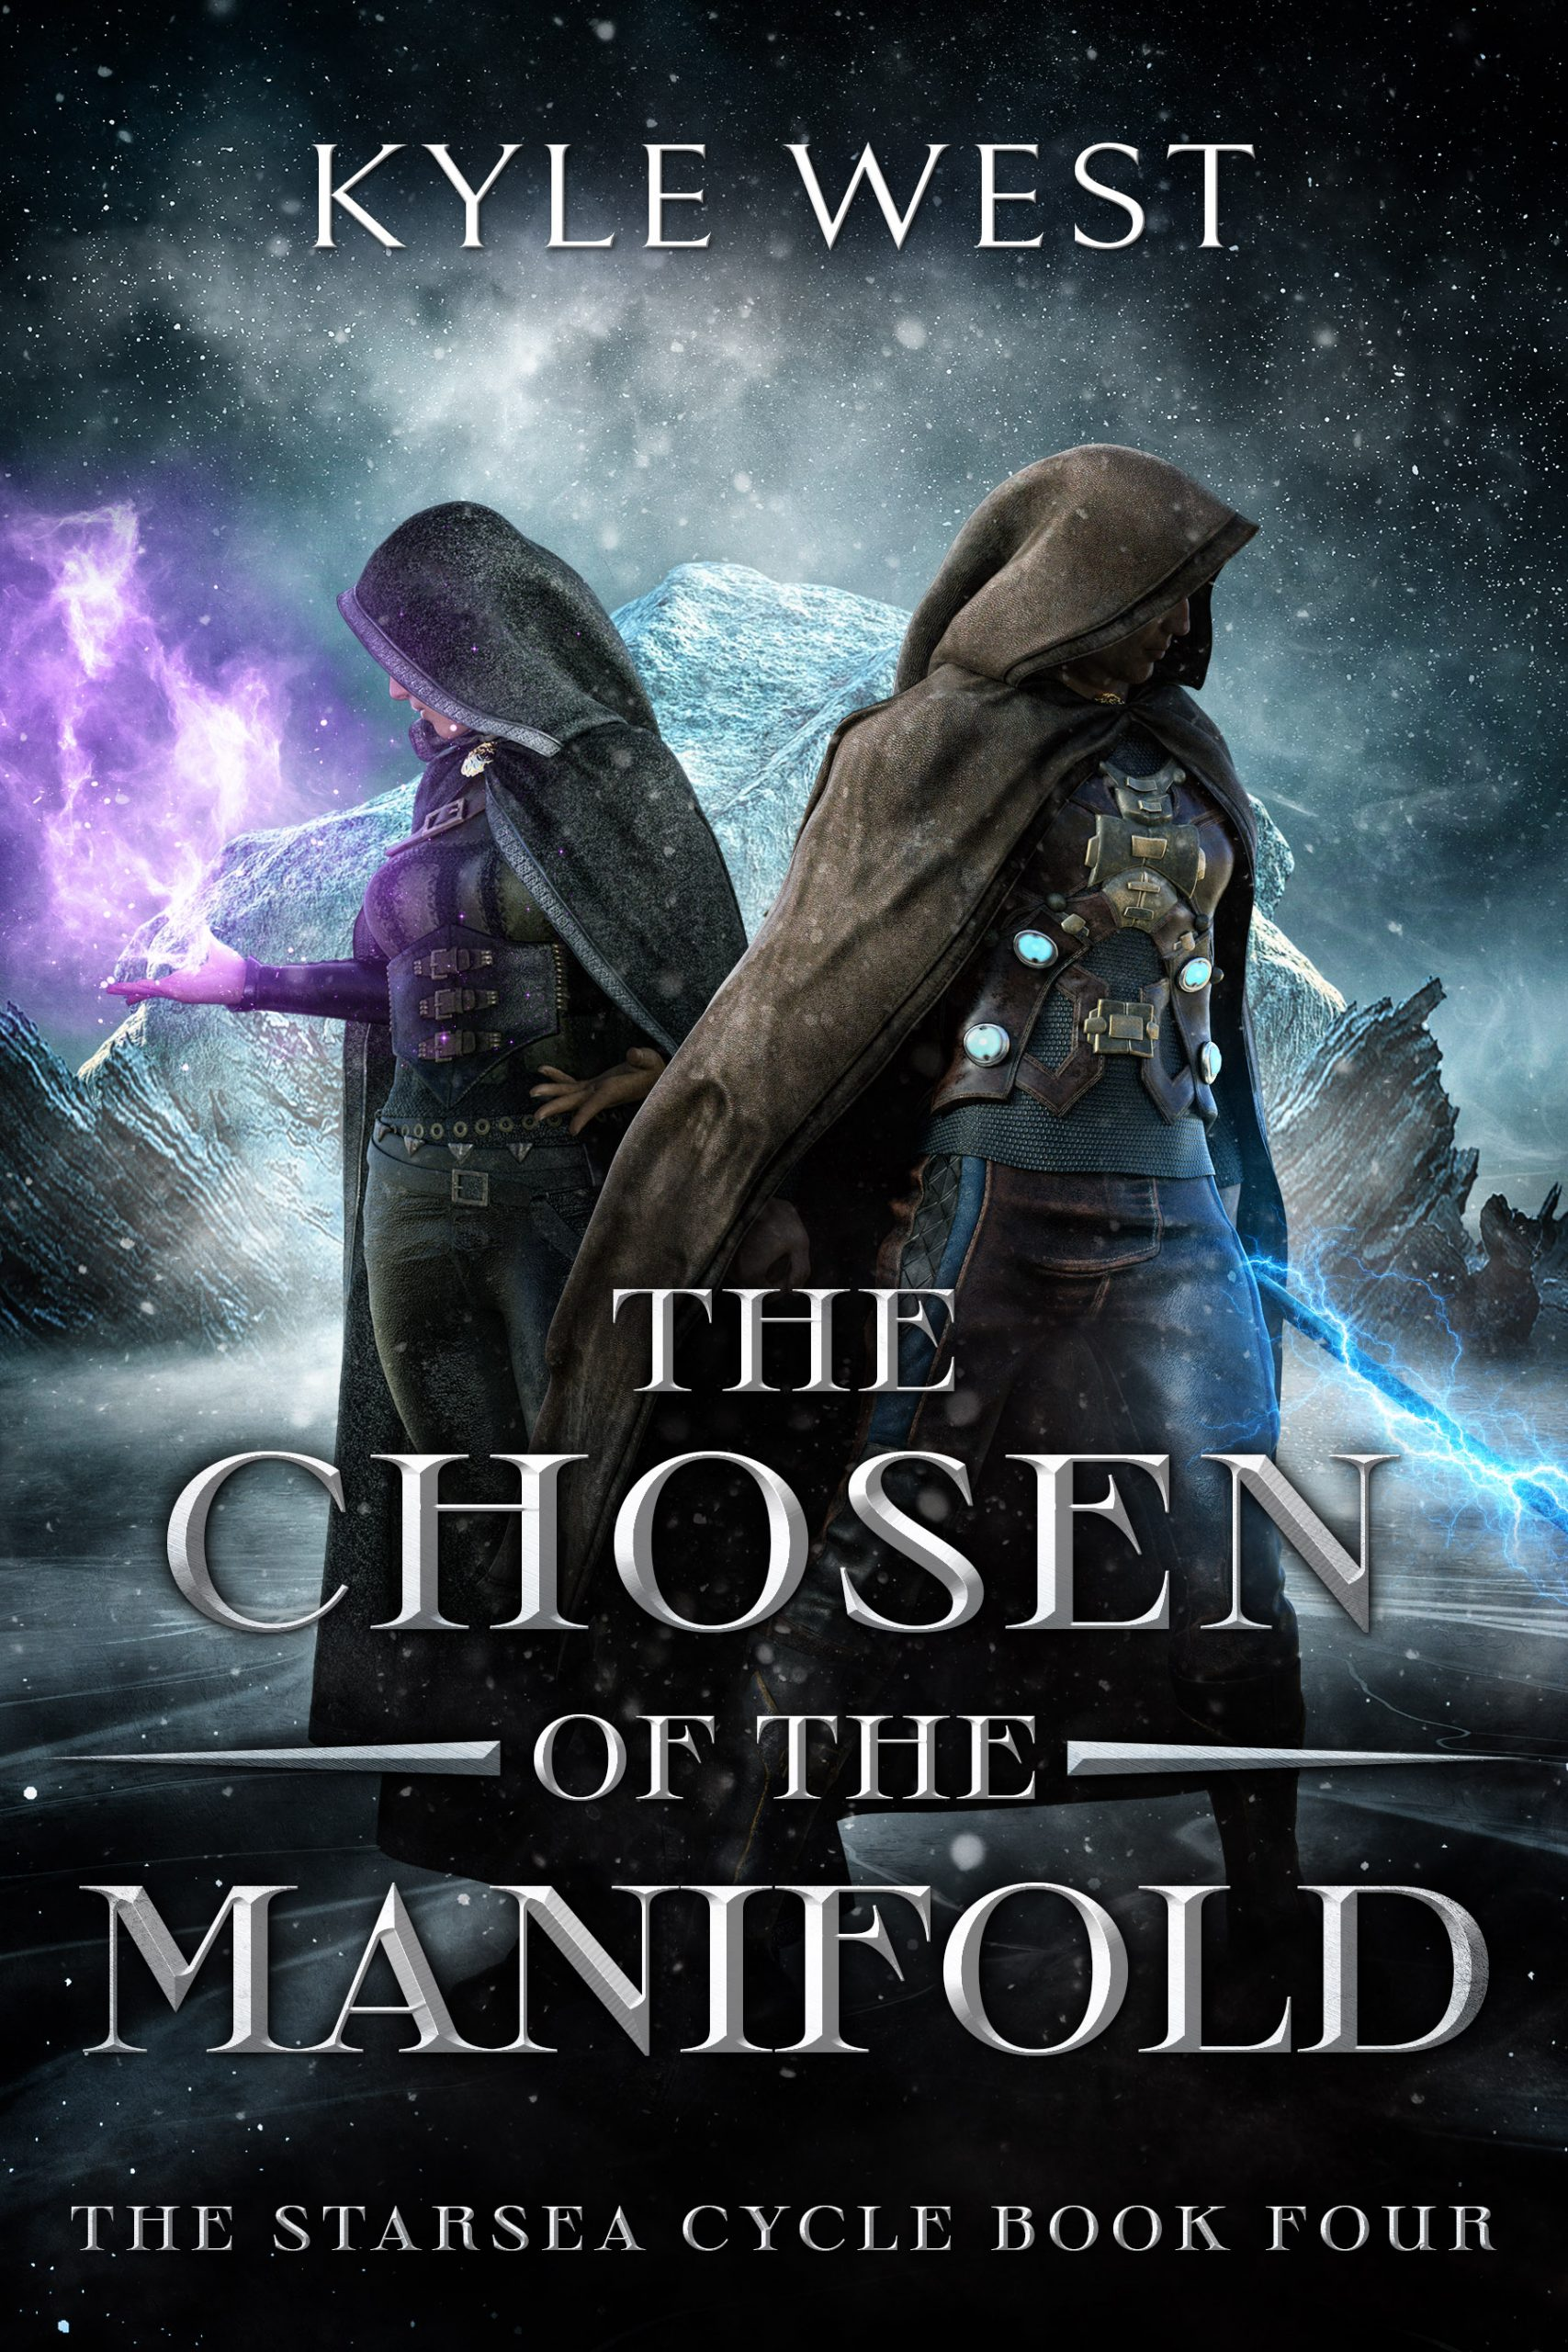 Chosen of the Manifold is now Live!